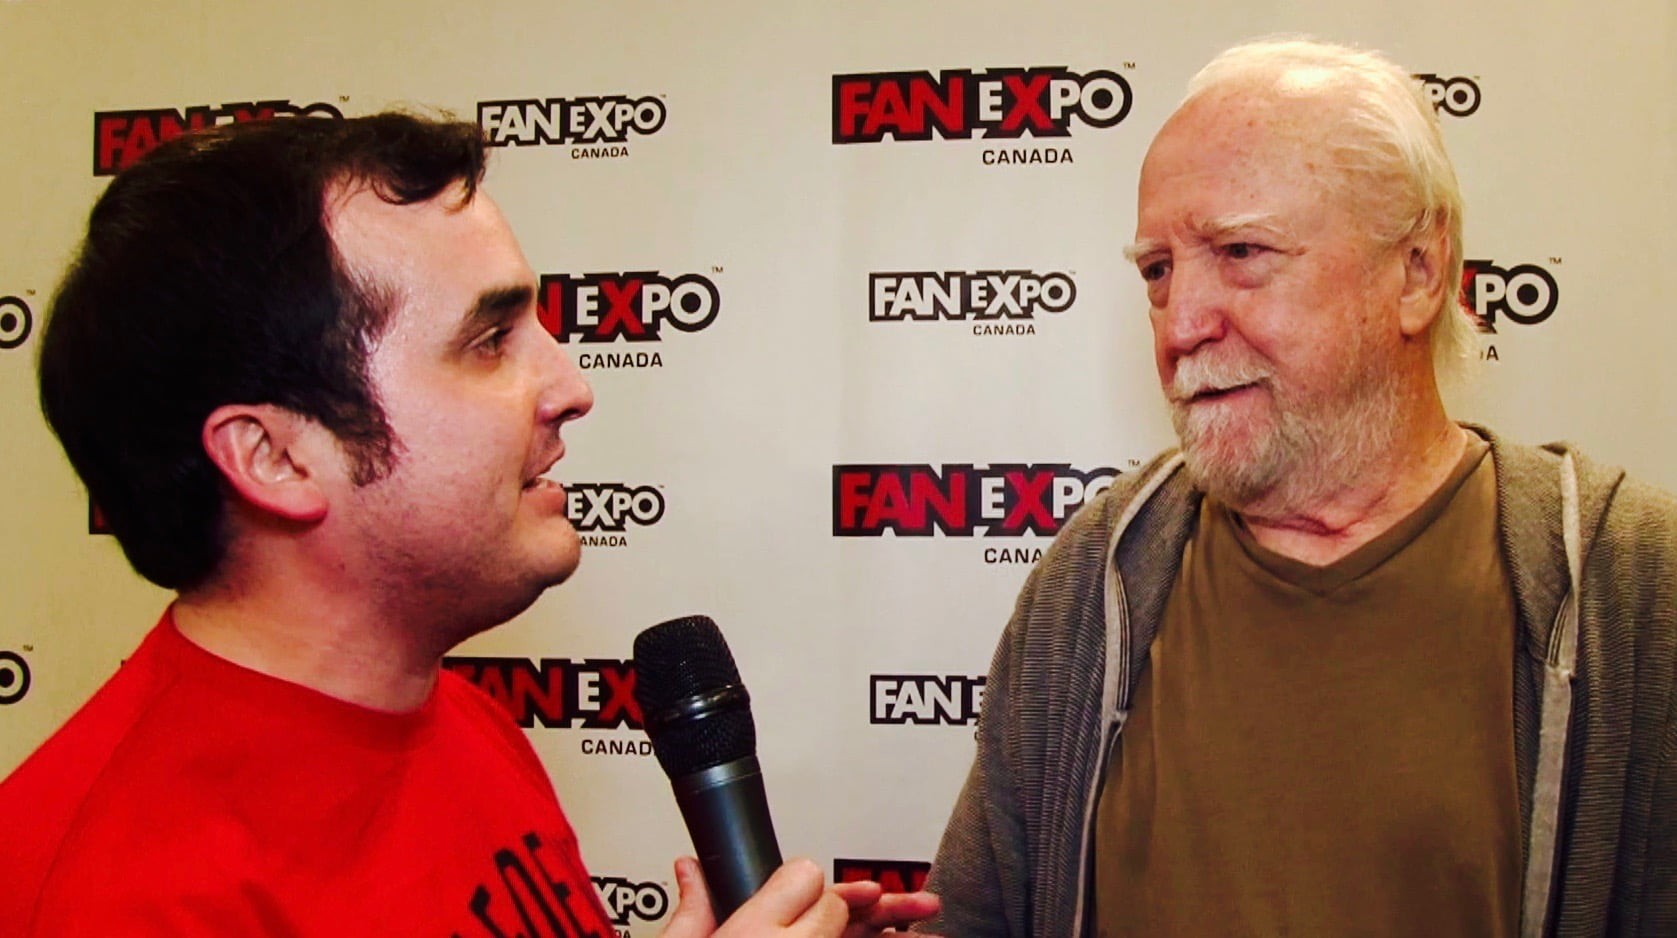 Geek Hard @ Fan Expo Canada 2016: PART TWO! (Featuring Dana DeLorenzo & Scott Wilson)